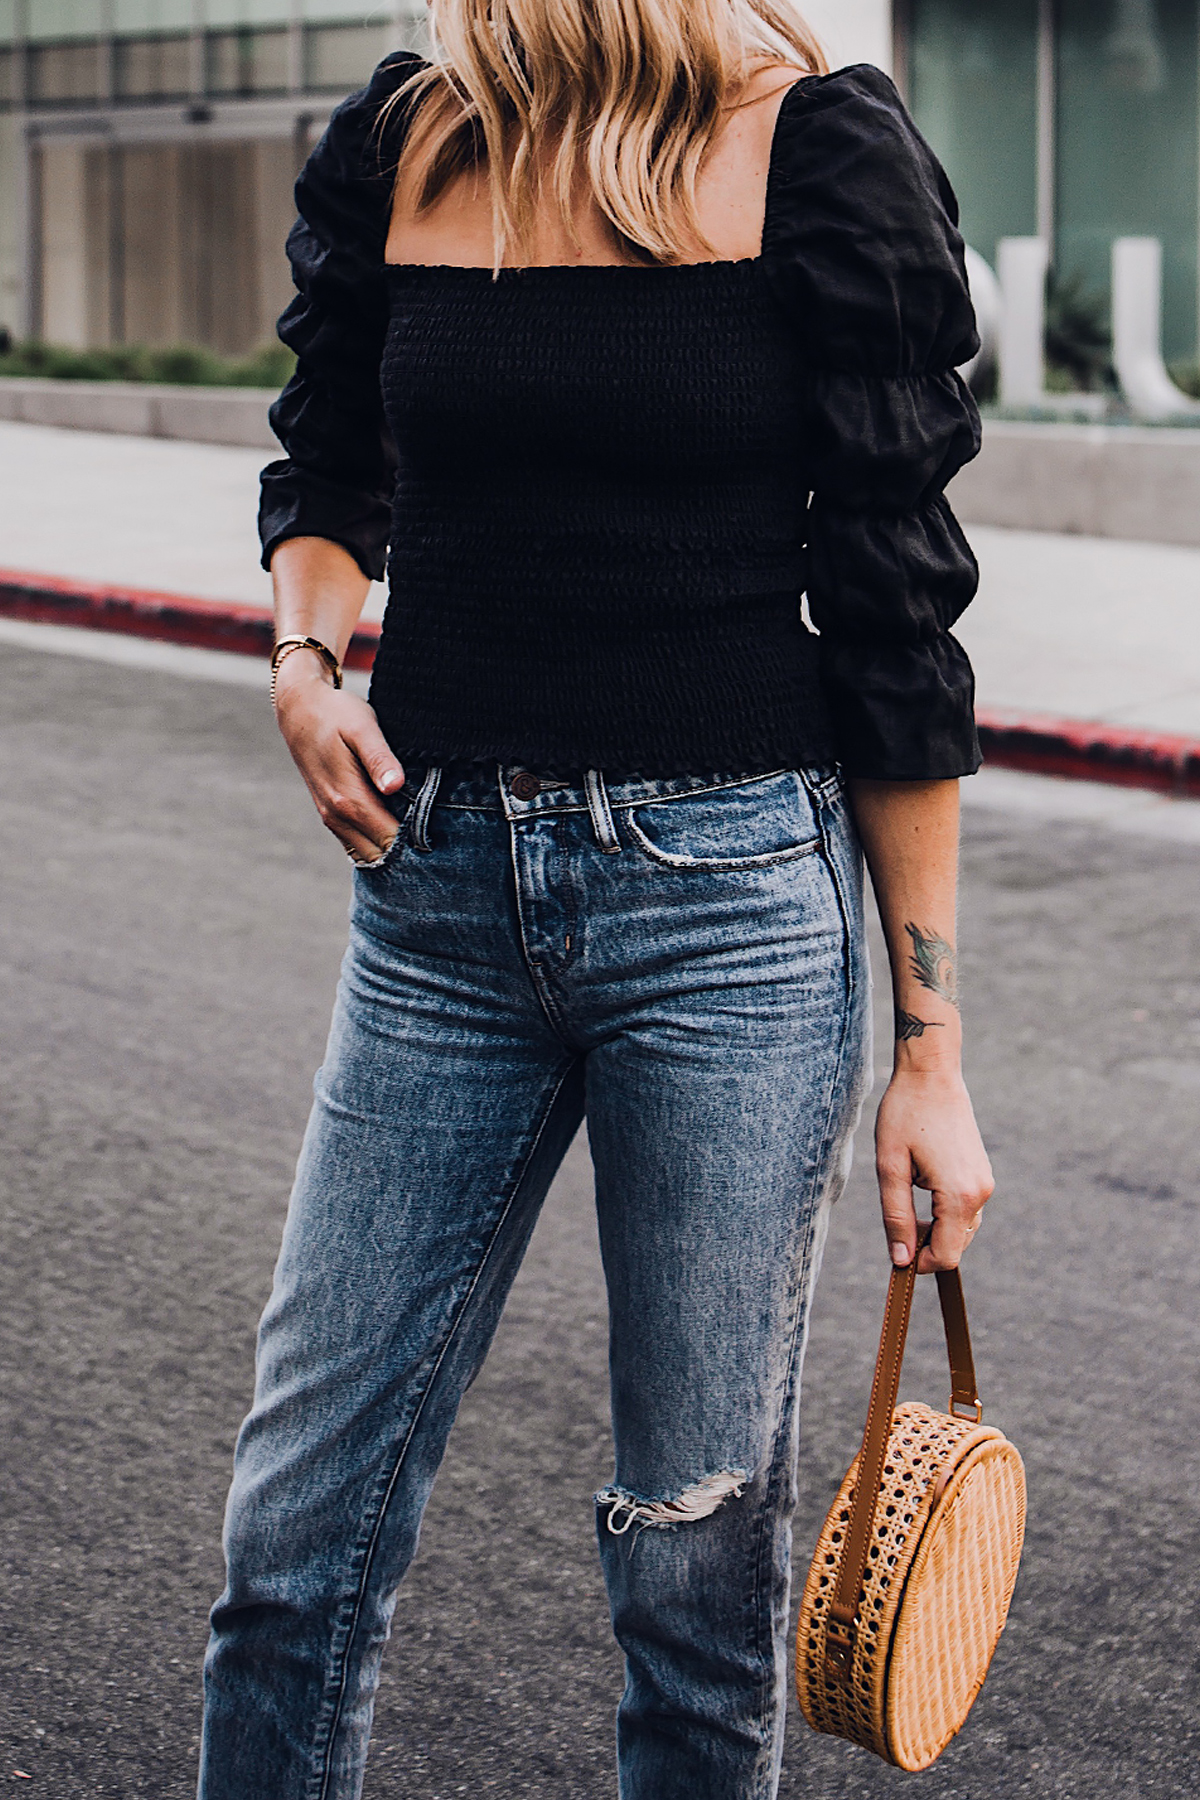 Blonde Woman Wearing Fashion Jackson Reformation Gala Top Black Ripped Jeans Cane Circle Straw Handbag Fashion Jackson San Diego Fashion Blogger Street Style